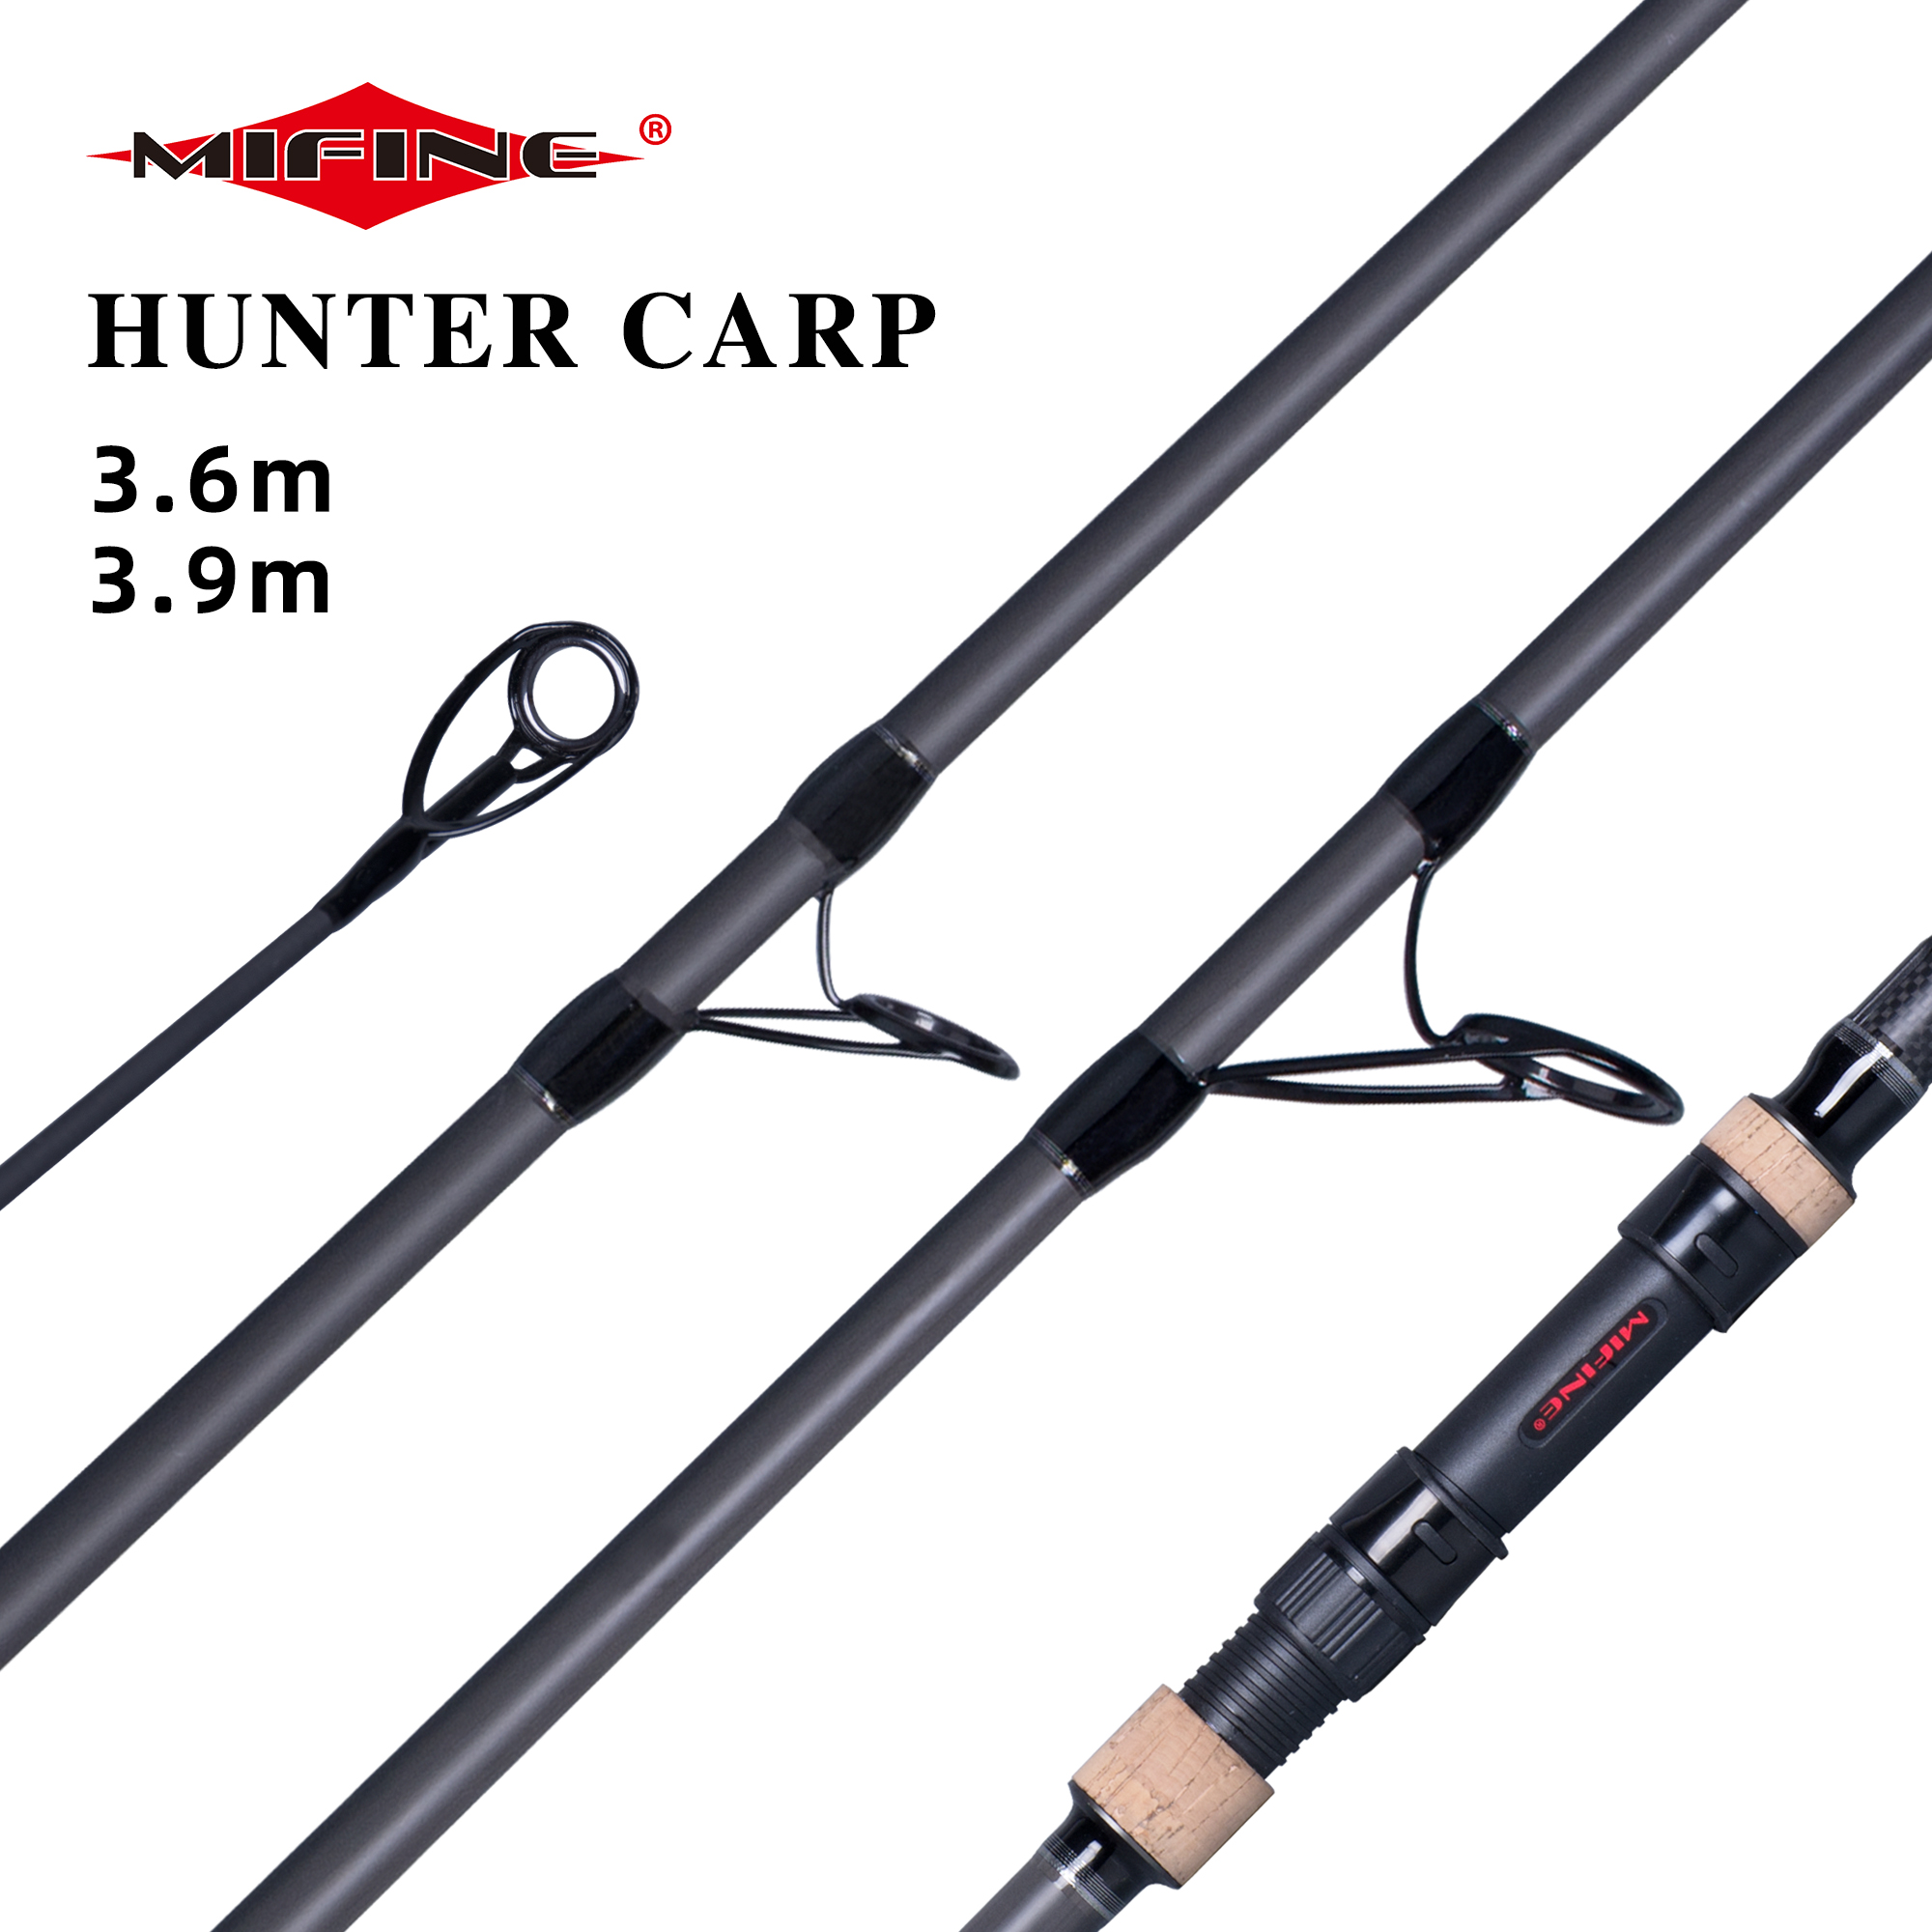 MIFINE SAKANA HUNTER CARP Fishing Rod 3.0/3.5/4.0lbs 3.6/3.9m High Carbon Surf Spinning Casting Hard Throwing shot to about 150M title=